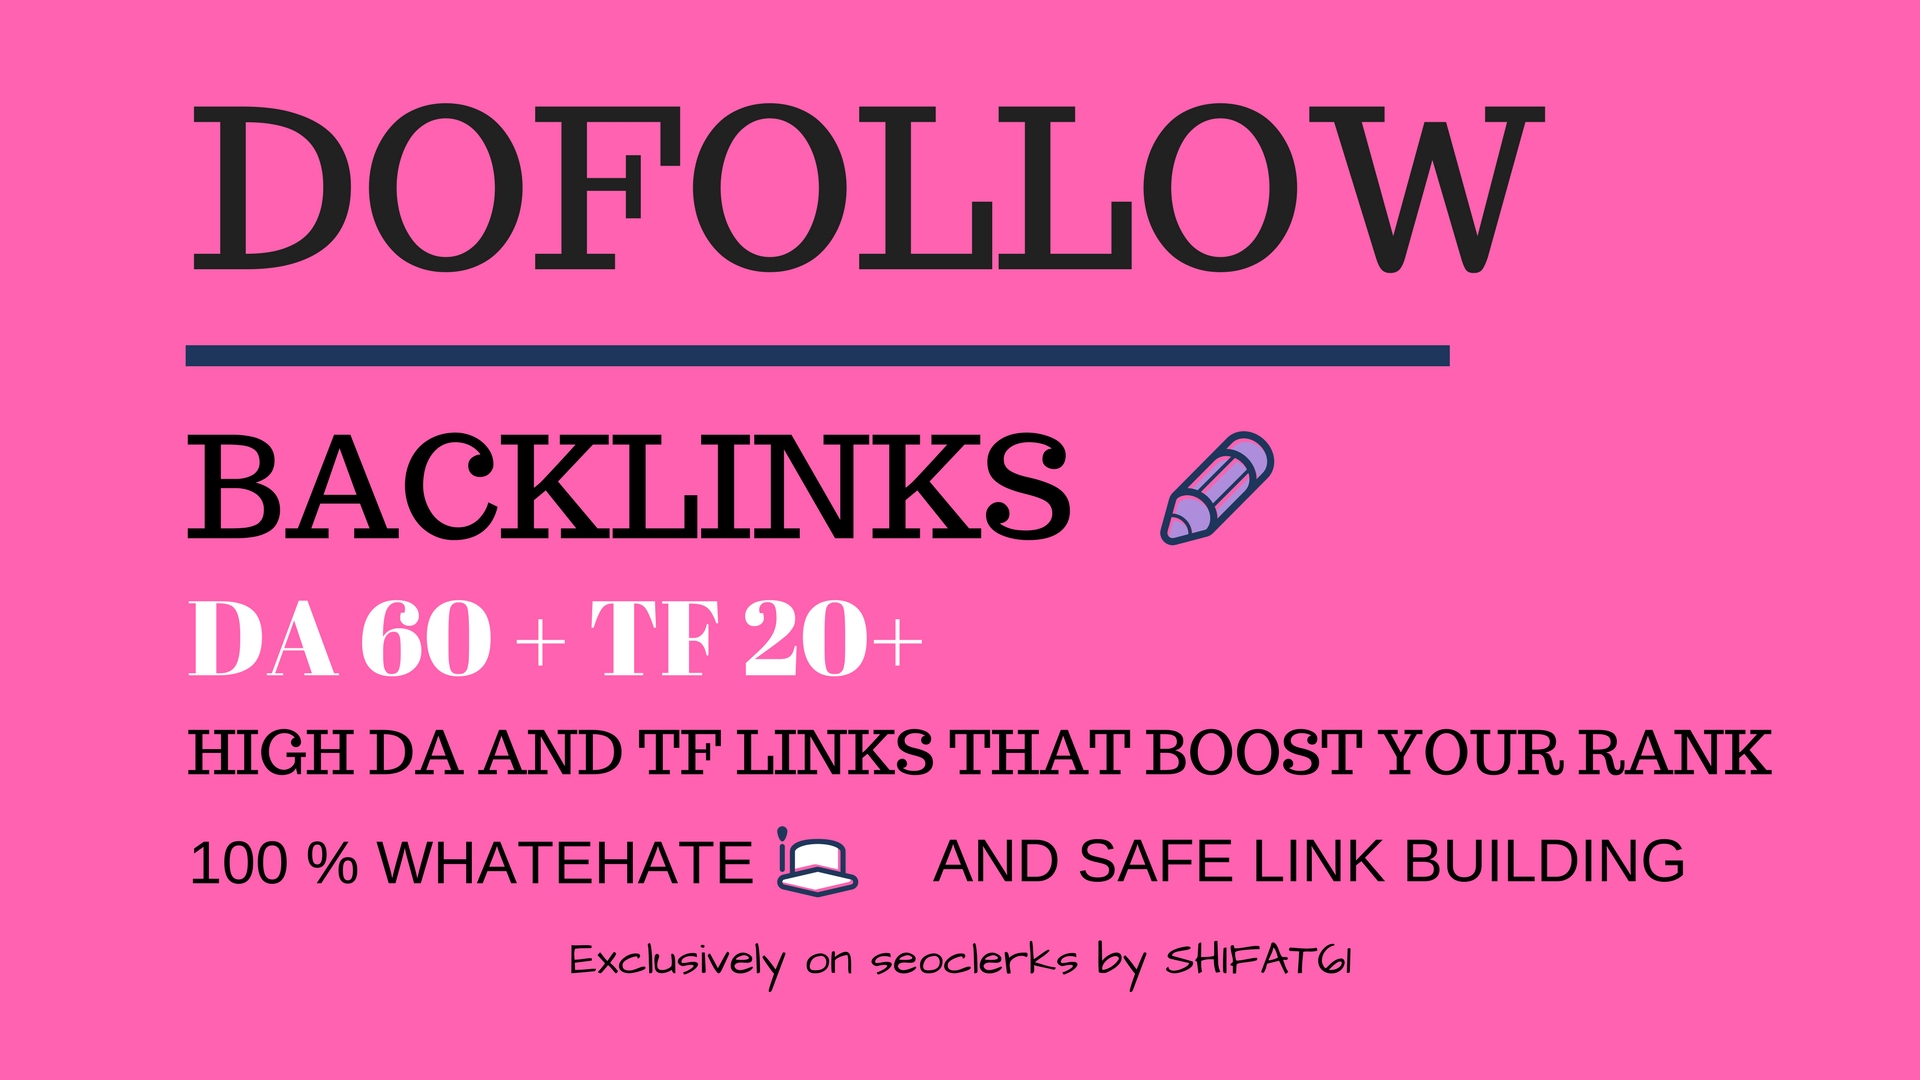 50 Dofollow SEO Backlinks, Boost Your Google Ranking